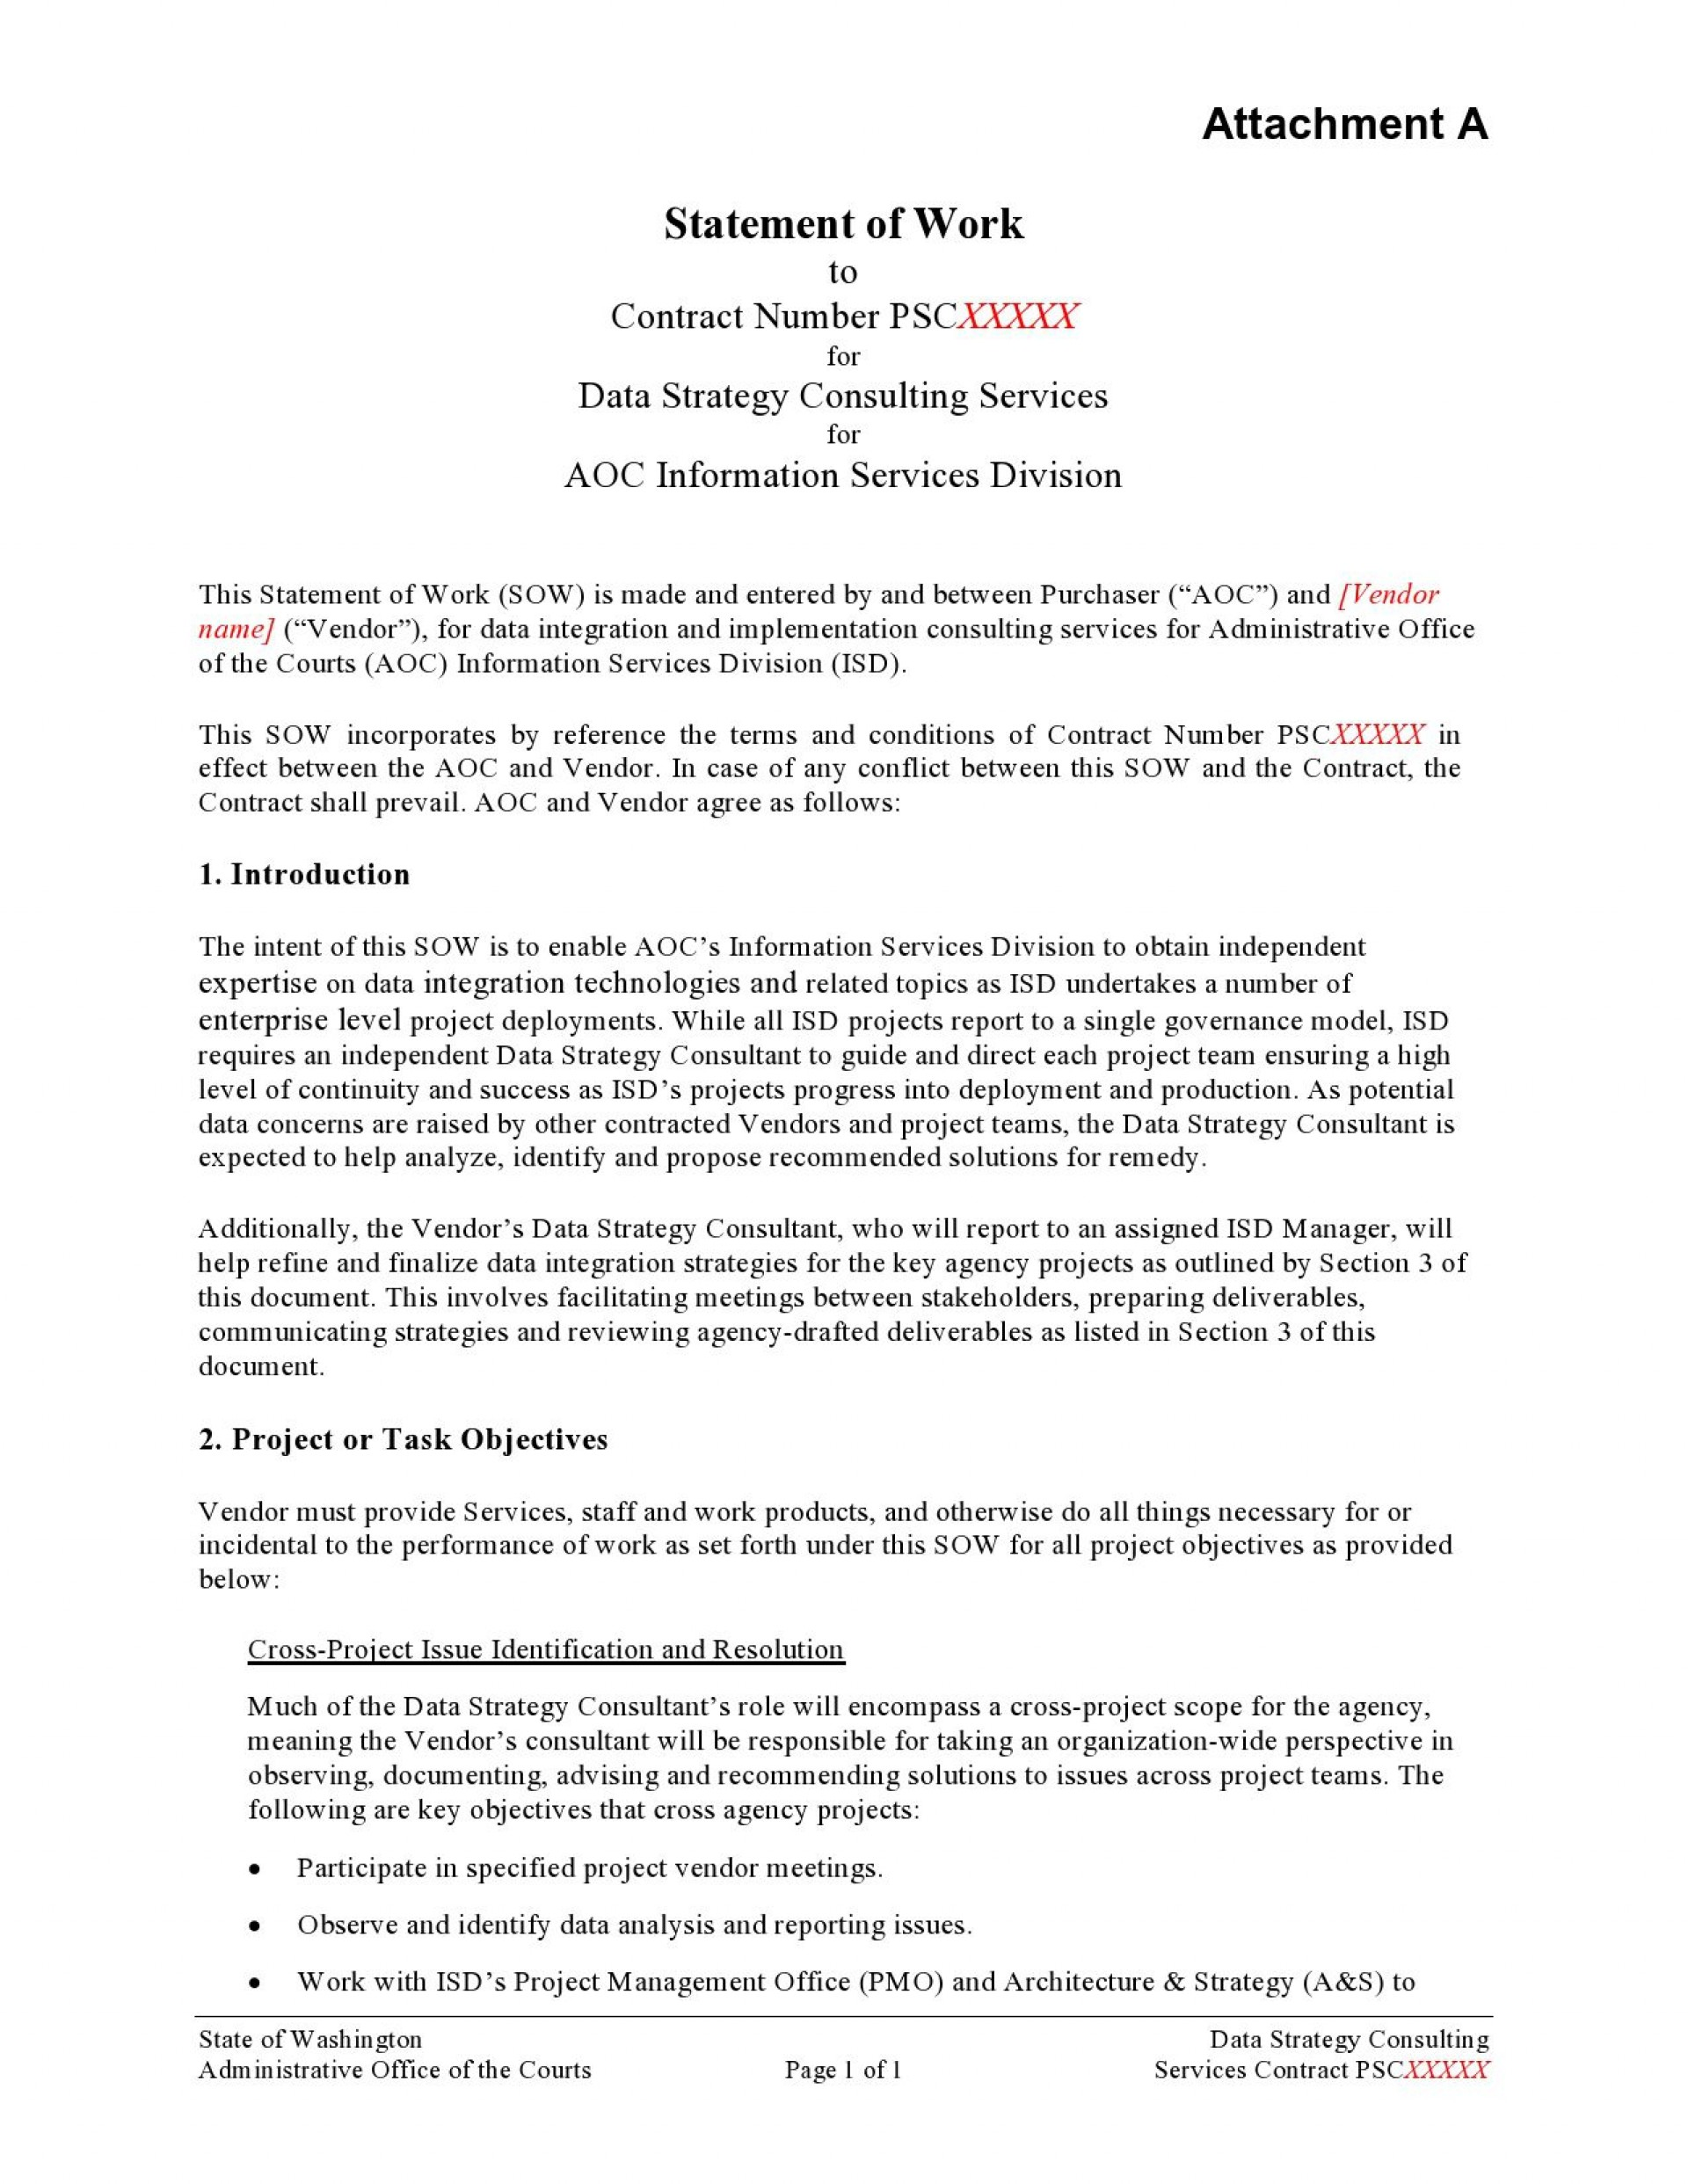 009 Unique Sample Statement Of Work For Consulting Service Highest Quality  Services Example1920